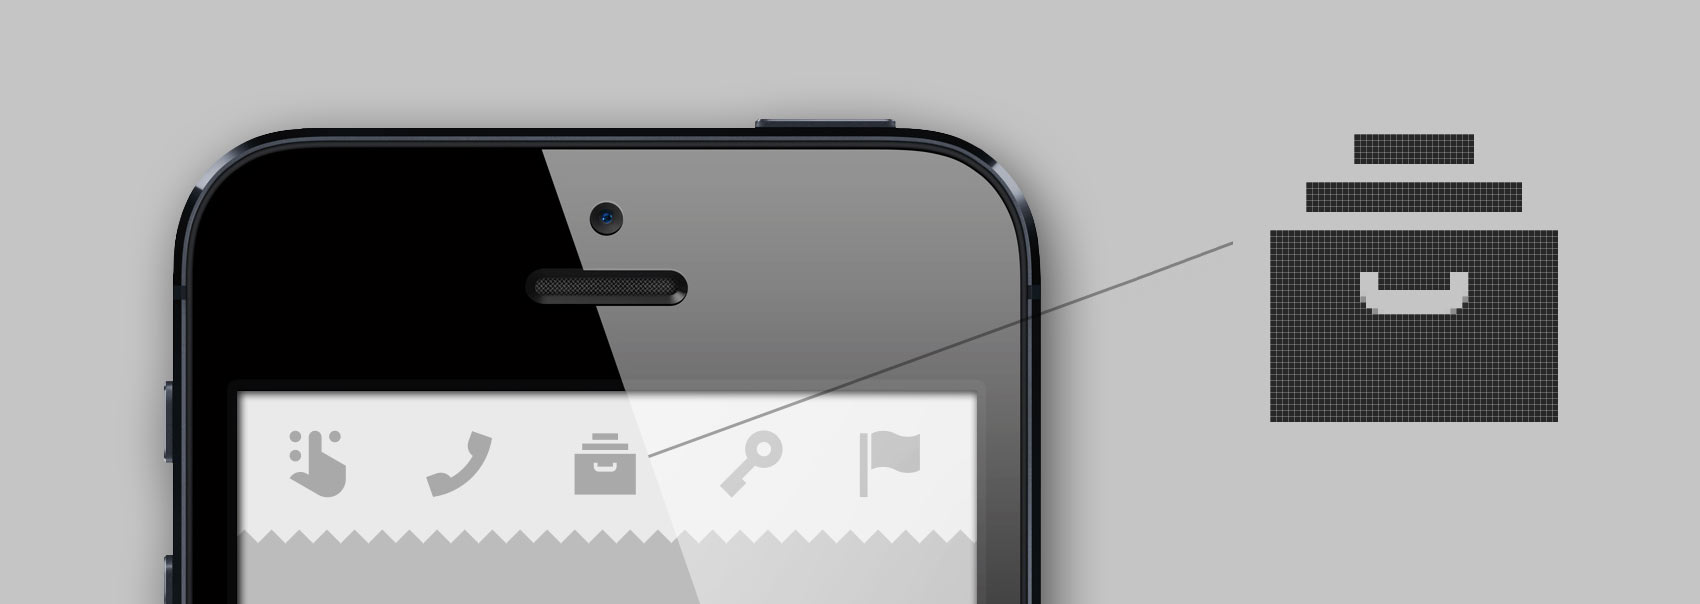 pixel perfect icon design for mobile devices for sharp display